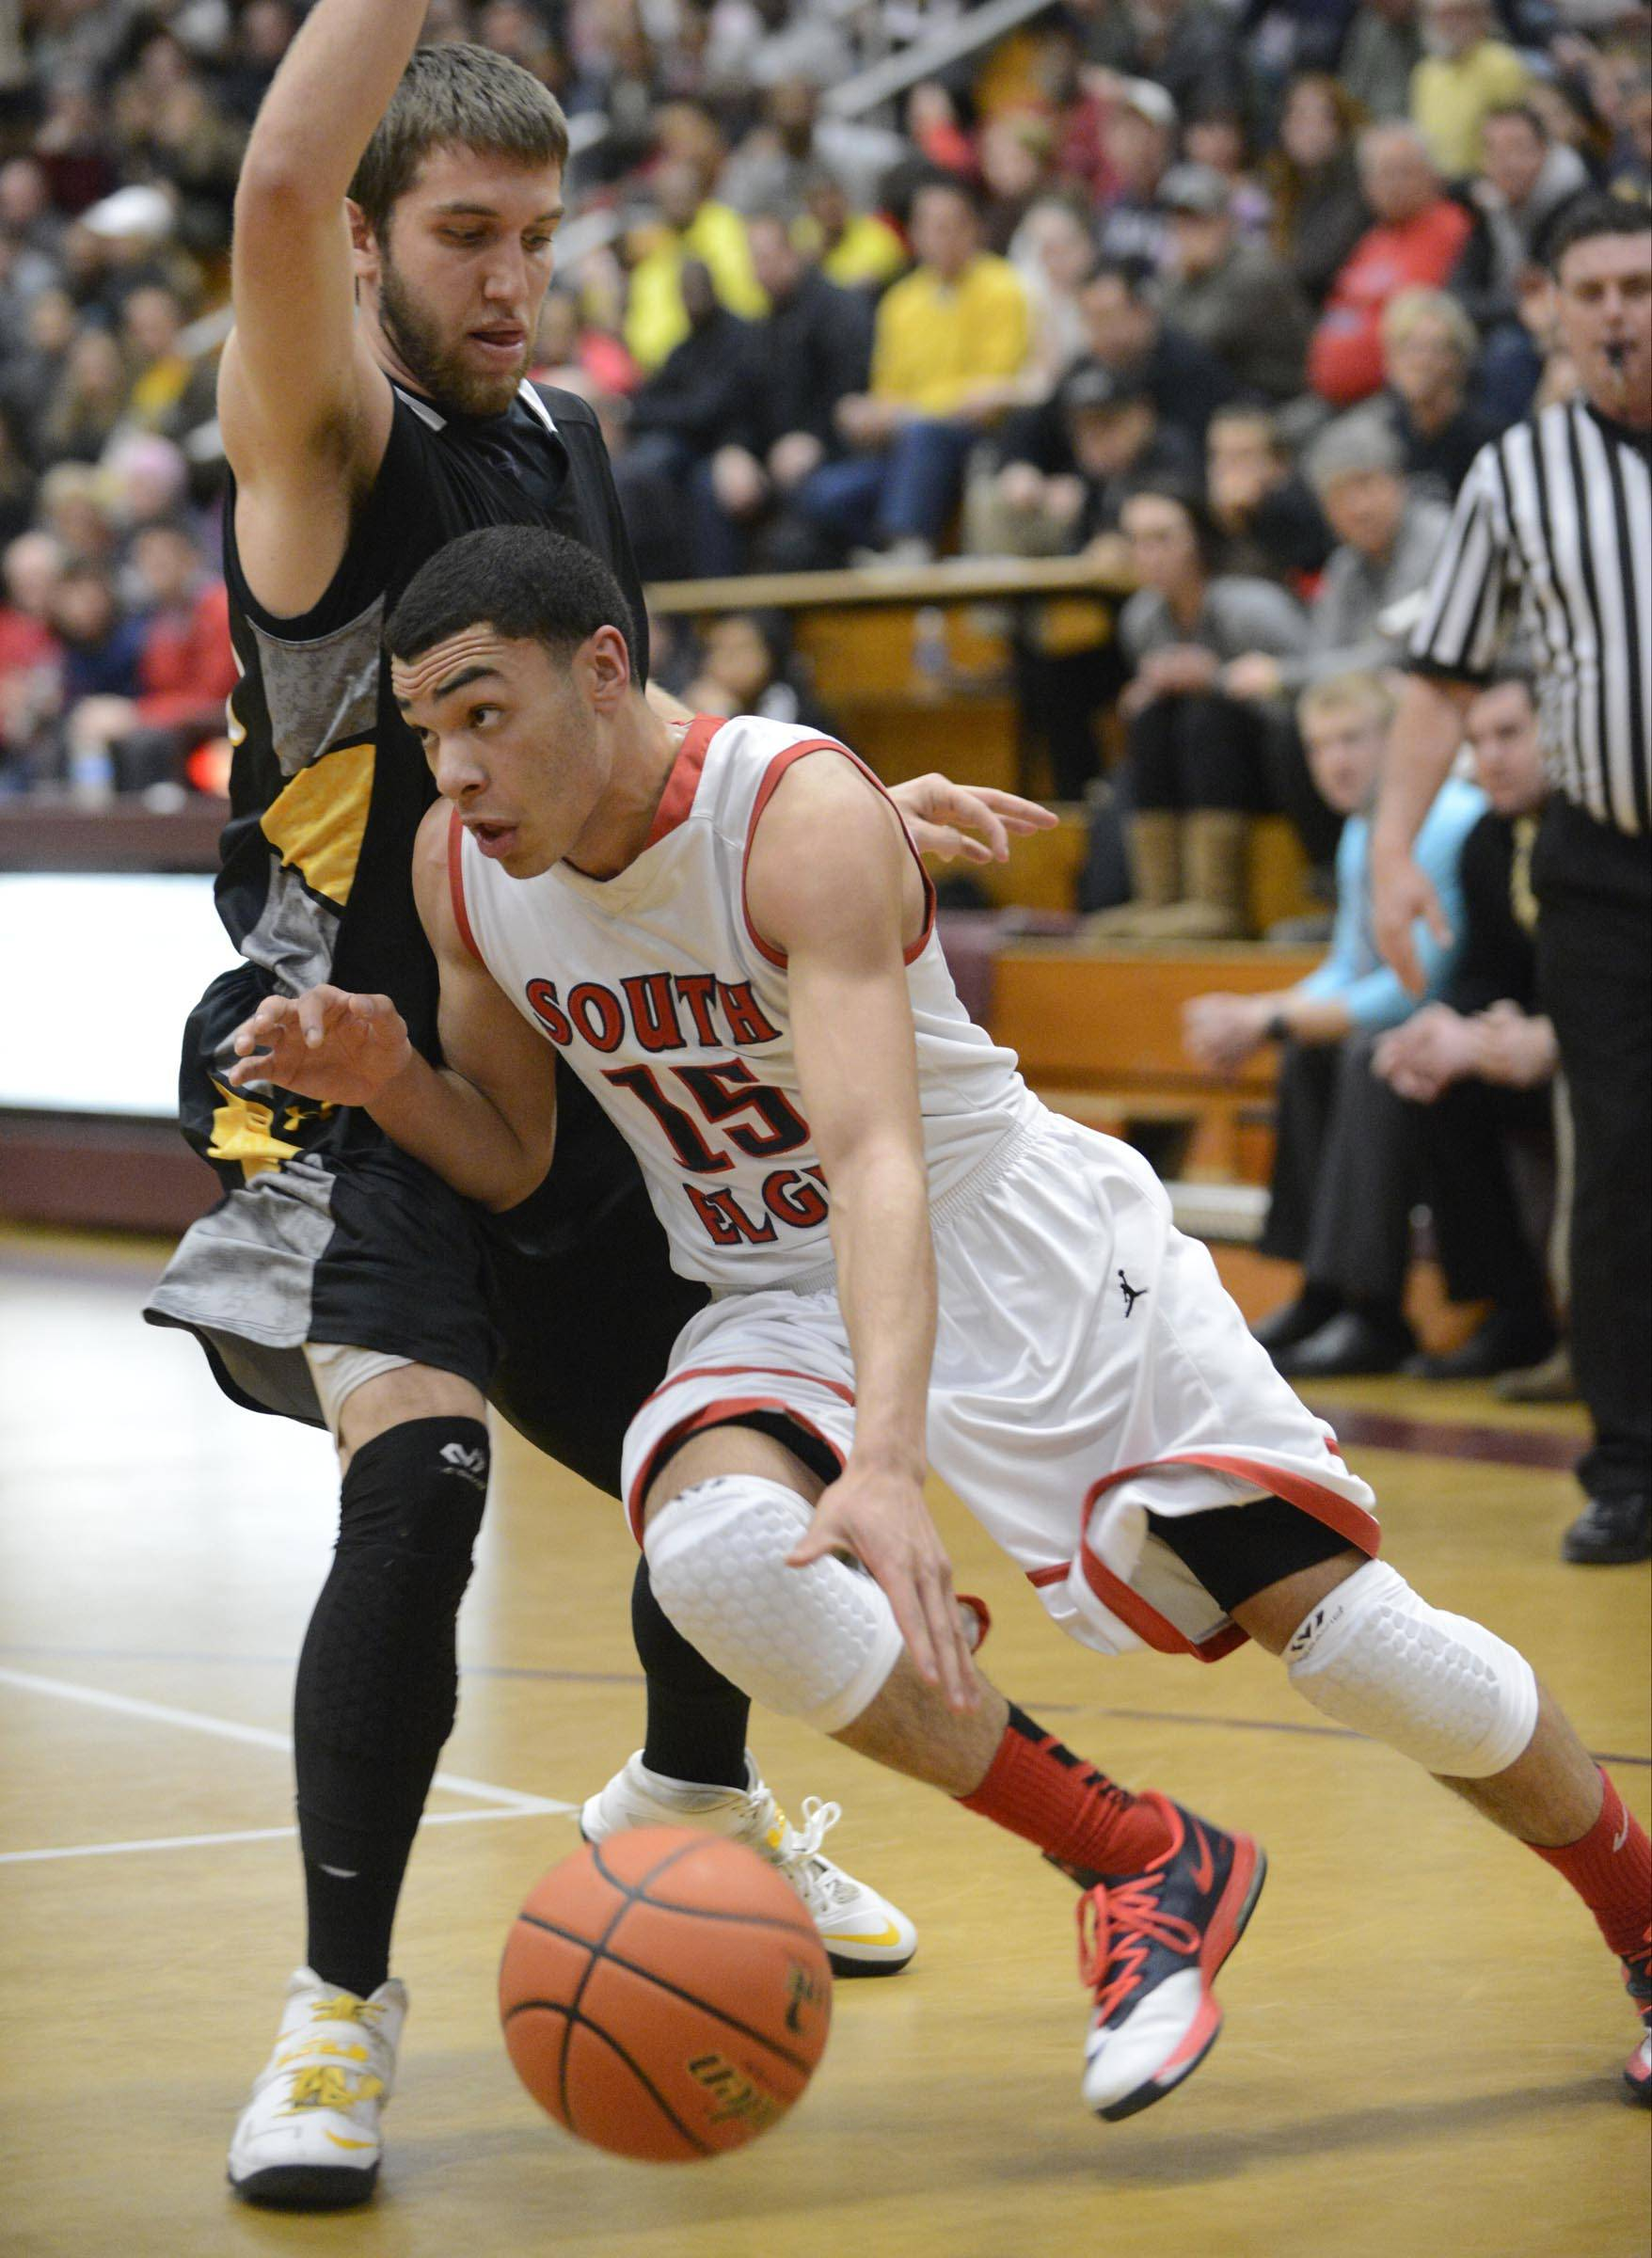 South Elgin senior Matt Smith (15) drives to the basket during the Storm's 71-66 Class 4A sectional semifinal win over Jacobs Wednesday at Elgin's Chesbrough Field House. South Elgin takes on Rockford Auburn Friday in the sectional championship game.